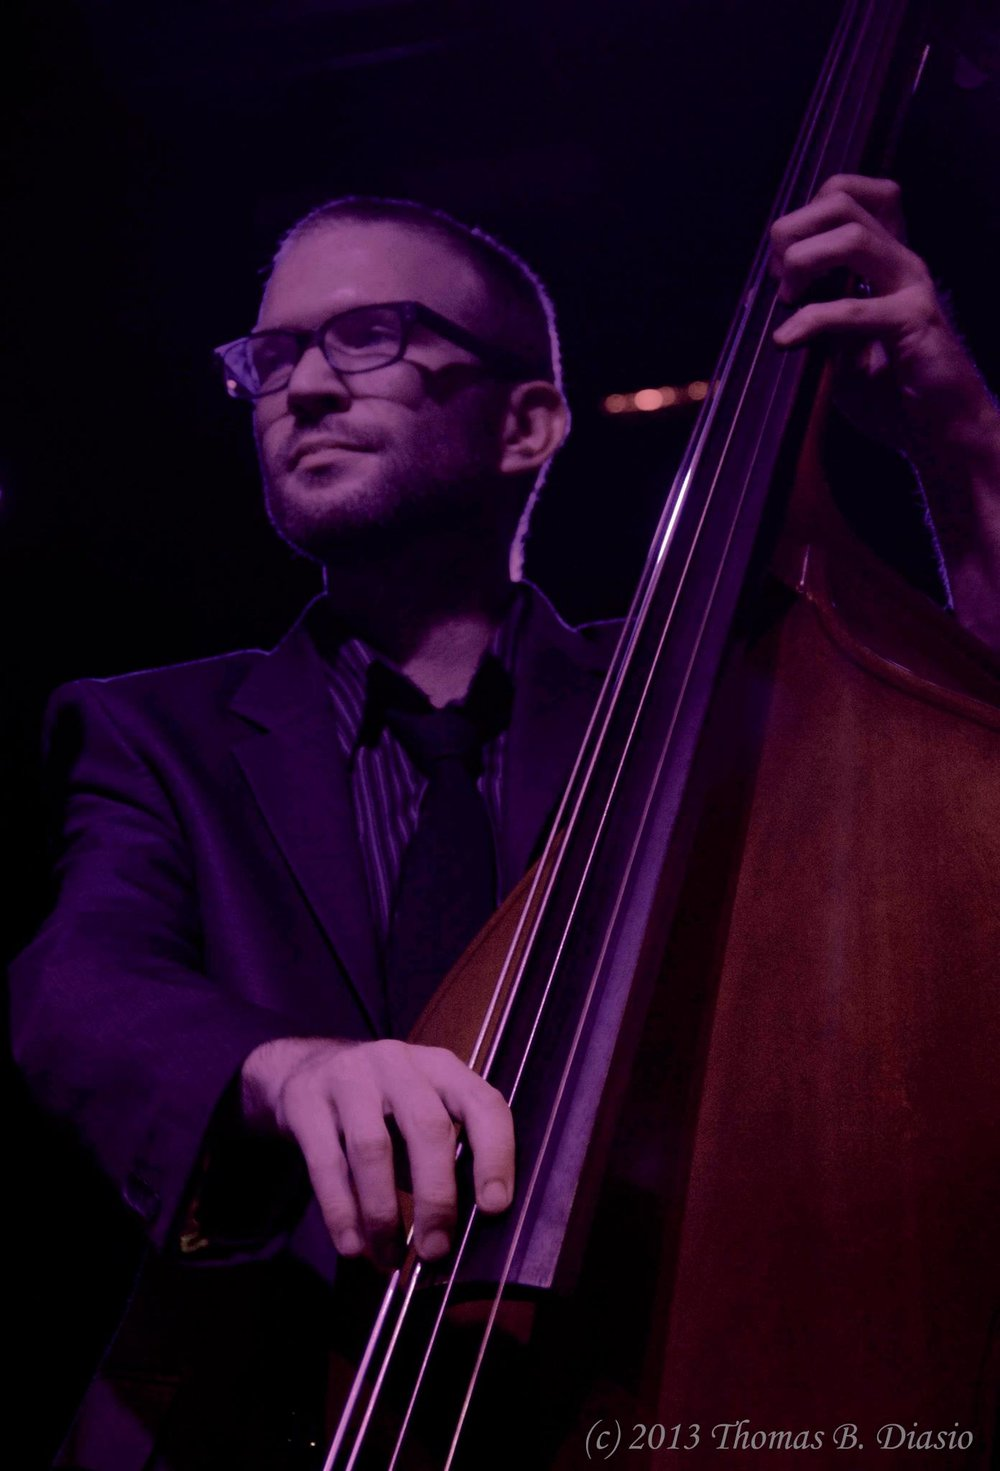 "Aaron Branson - Aaron Branson has been teaching and performing professionally for 15 years. He is trained and proficient in all contemporary genres and styles for both bass and guitar. His training really became serious when he was in music school at UAB, where he earned ""most accomplished student"" in the area of jazz studies three years in a row, and first earned his shot at teaching by substituting for his instructor in the ""jazz combo"" ensemble in which he was enrolled. He also taught a summer ""jazz improvisation"" class at the university one summer and has since maintained a steady routine of private and class instructions. He has been teaching at Highland School for four years as the private guitar and ""Rock Band"" class instructor. Aaron now looks forward to expanding his reach by joining his friends and colleagues at Homewood School of Music, in order to help make this new and wonderful venue the vehicle of education that only these instructors can. Aaron also enjoys performing and has worked regularly with The Jason Bailey Band, Black Jacket Symphony, Tux Shop Hero, Bonus Round, India Ramey, and many others."